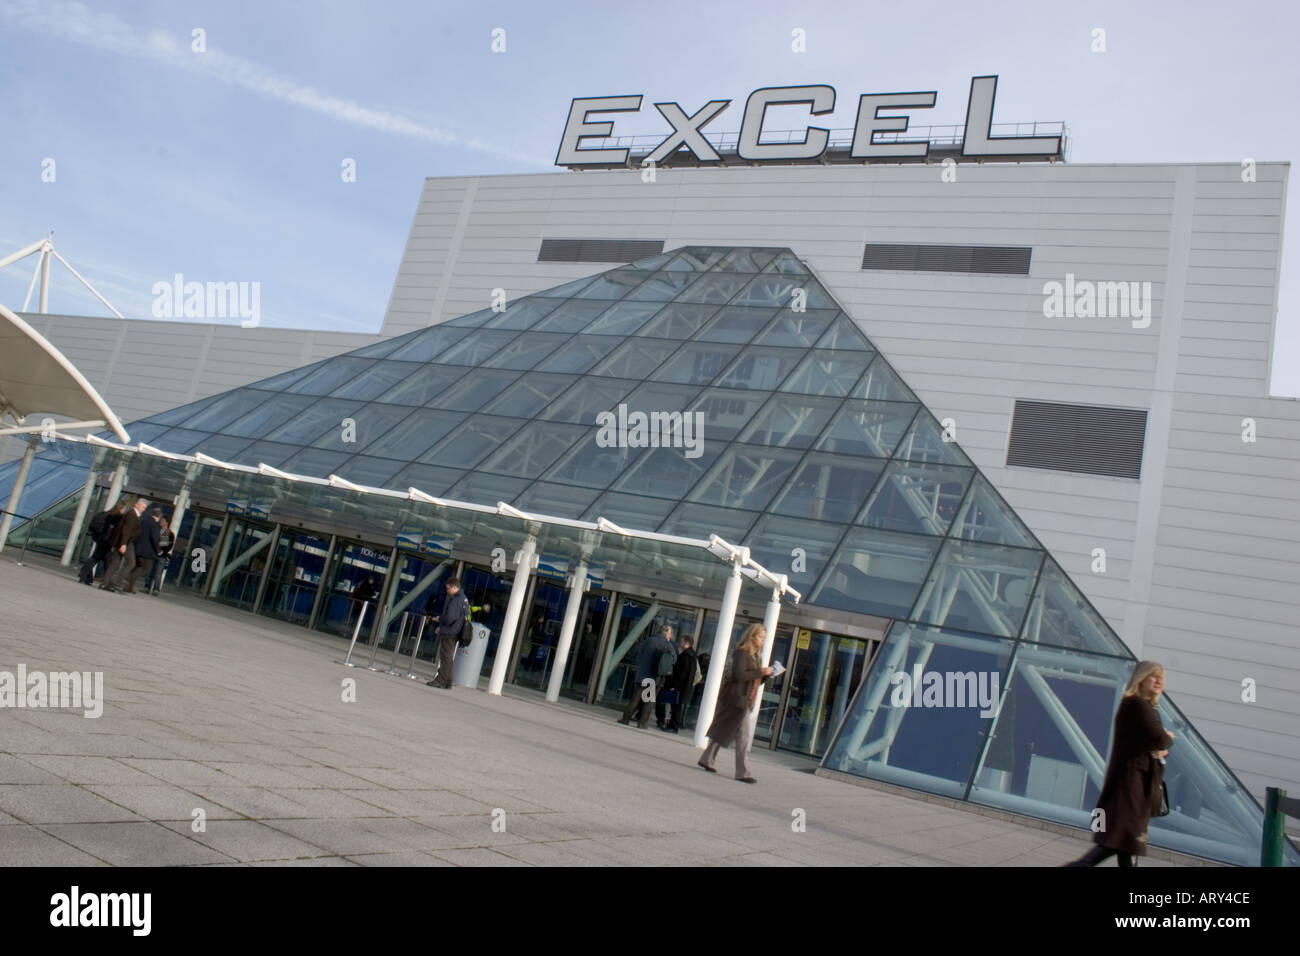 Excel exhibition centre Docklands London - Stock Image